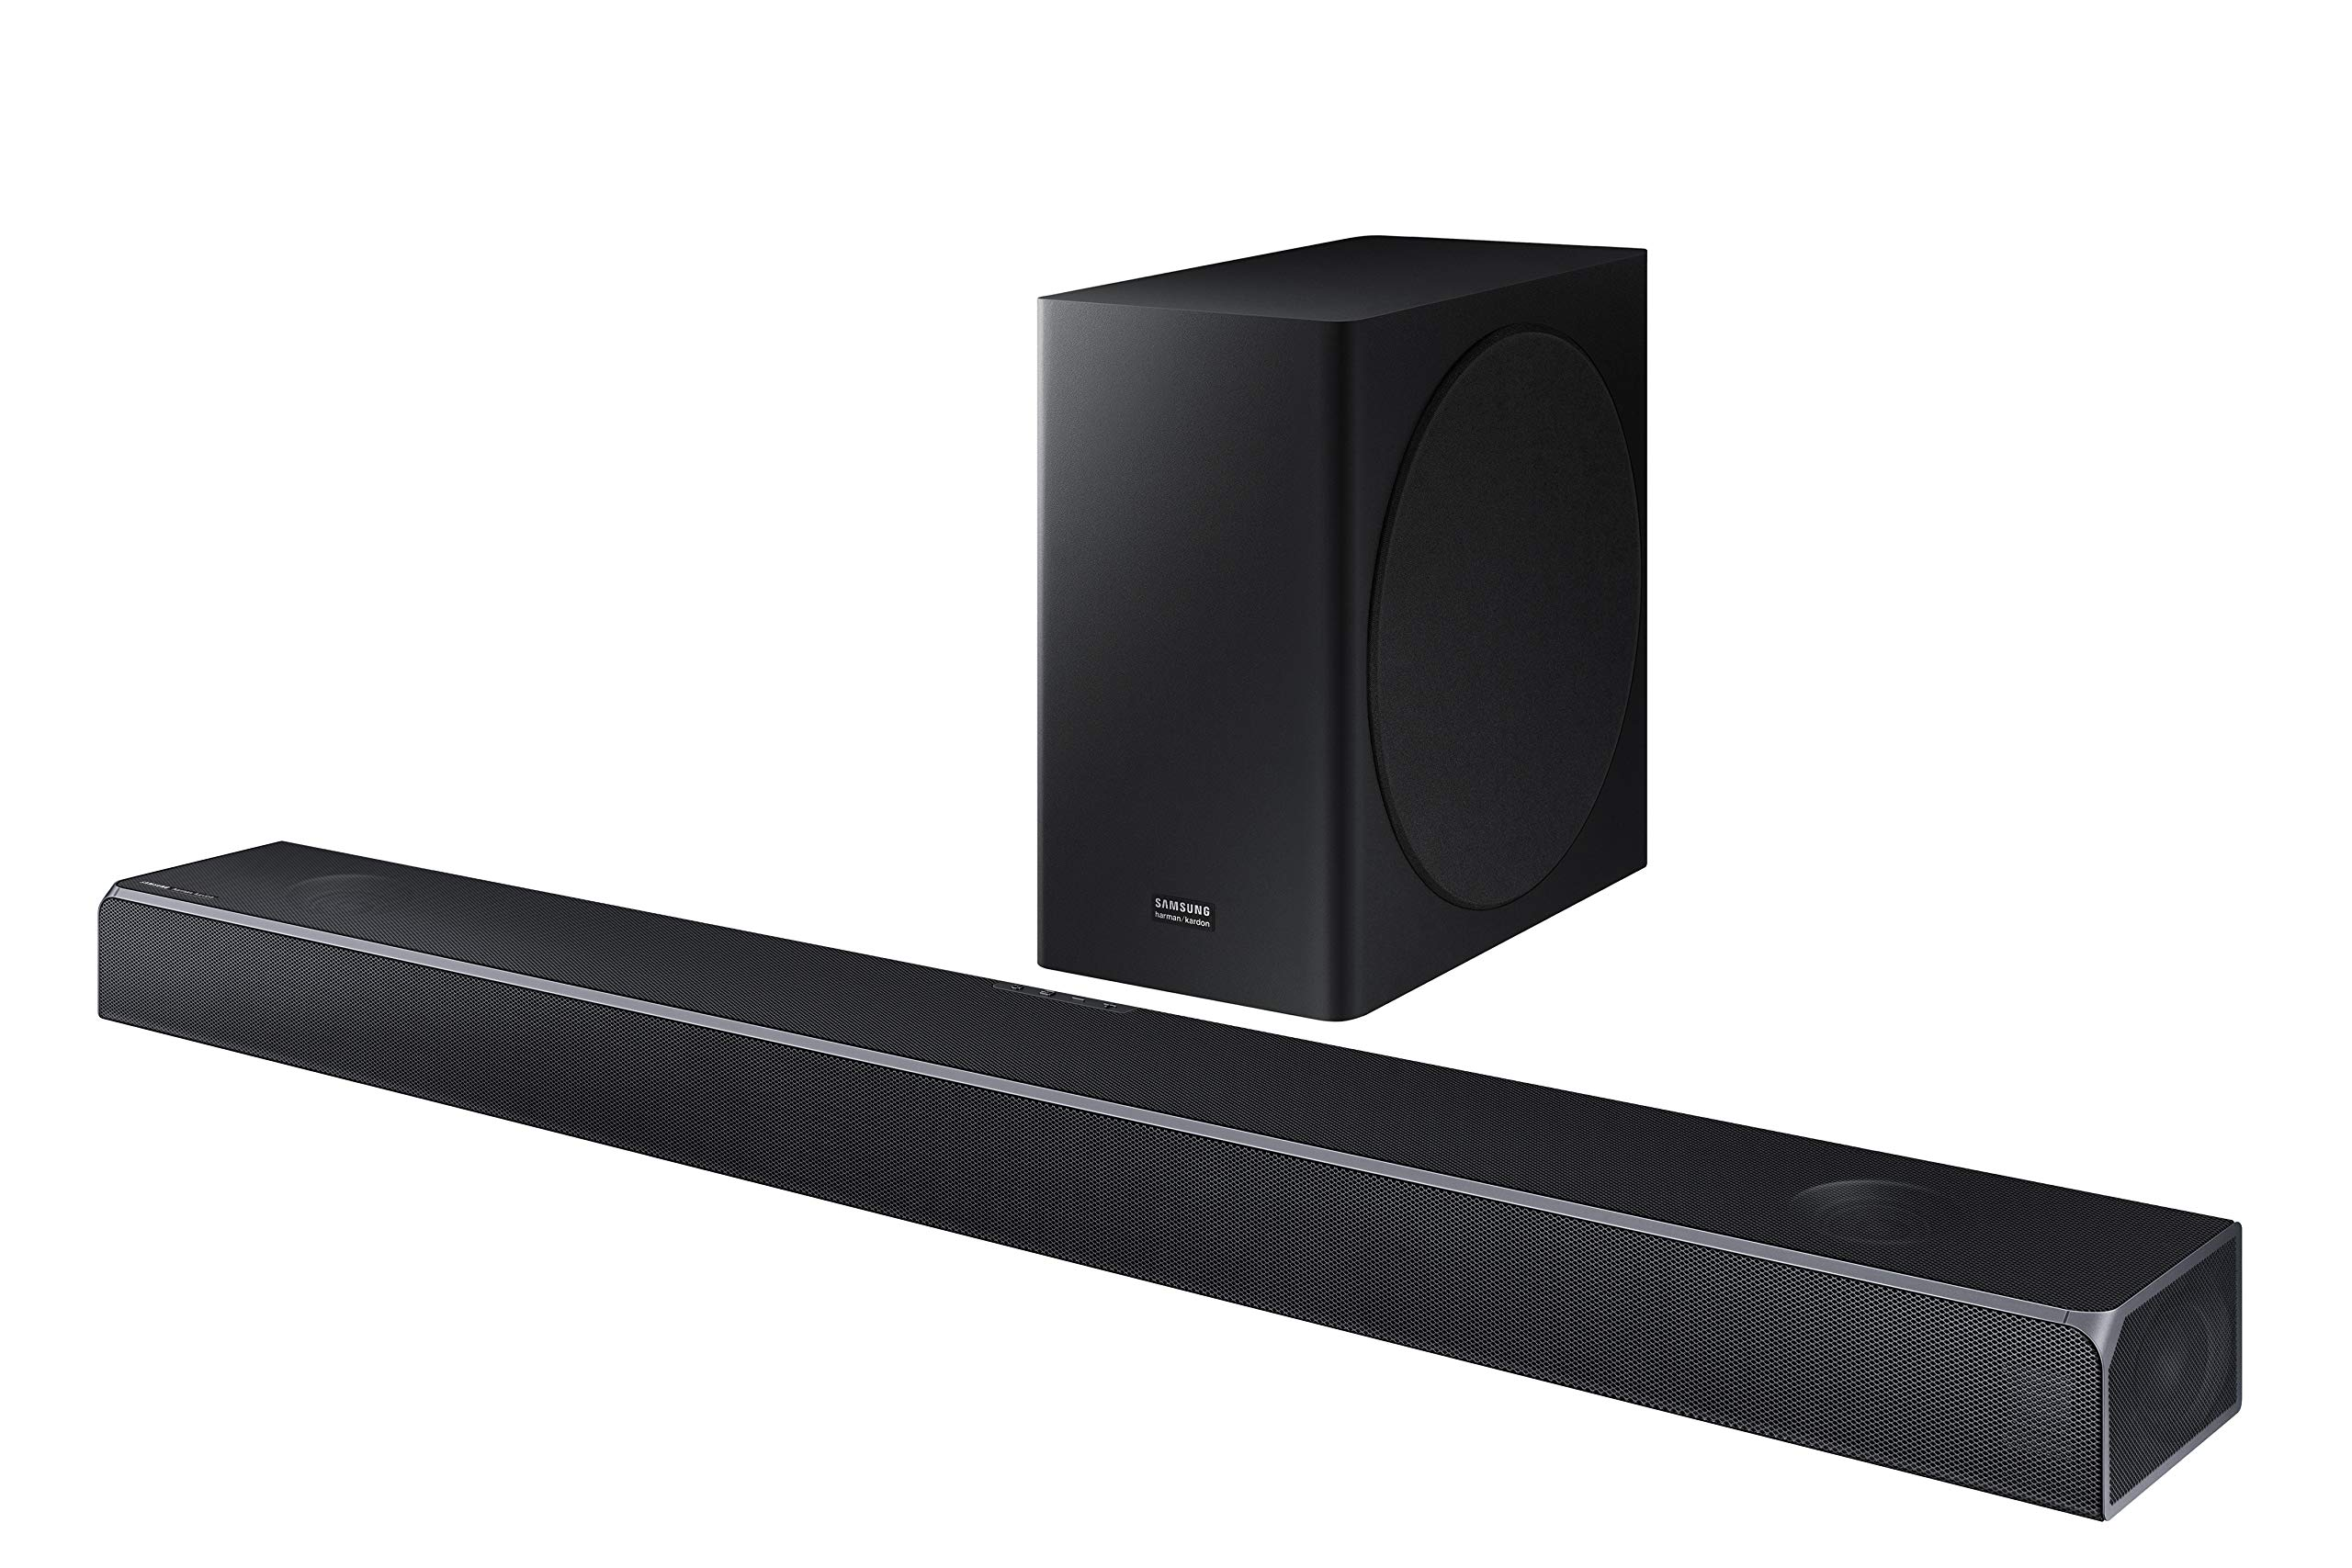 Samsung Harman Kardon 5.1.2 Dolby Atmos Soundbar HW-Q80R with Wireless Subwoofer, Adaptive Sound, Game Mode, 4K Pass-Through with HDR, Bluetooth & Alexa Compatible